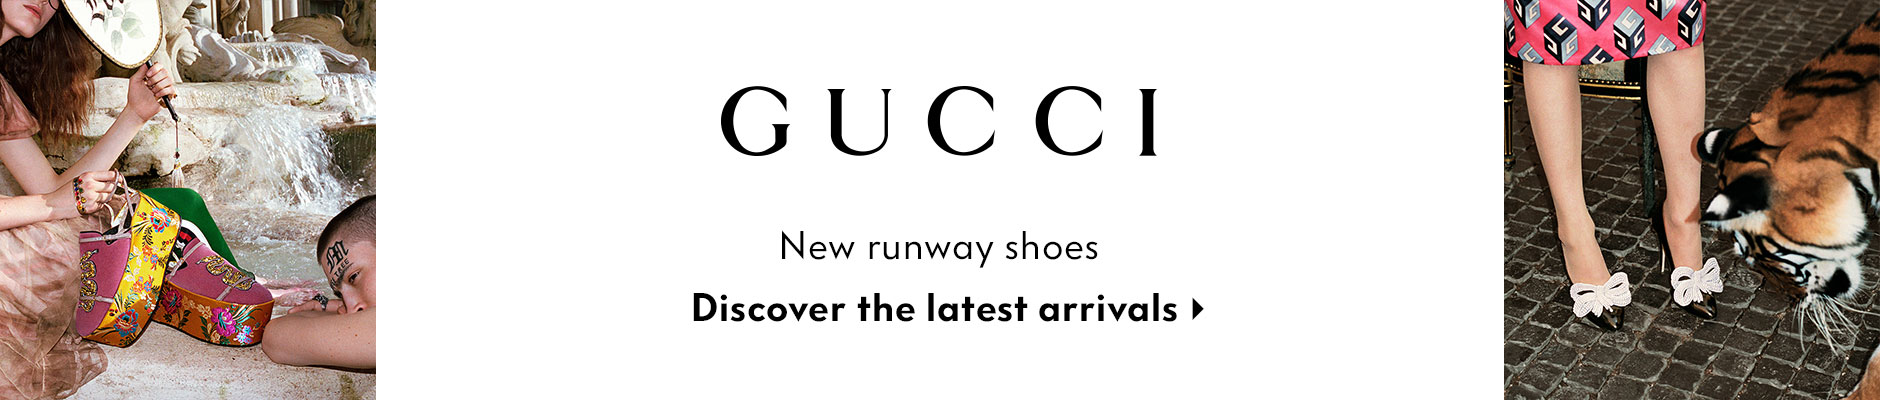 Gucci Shoes Lookbook